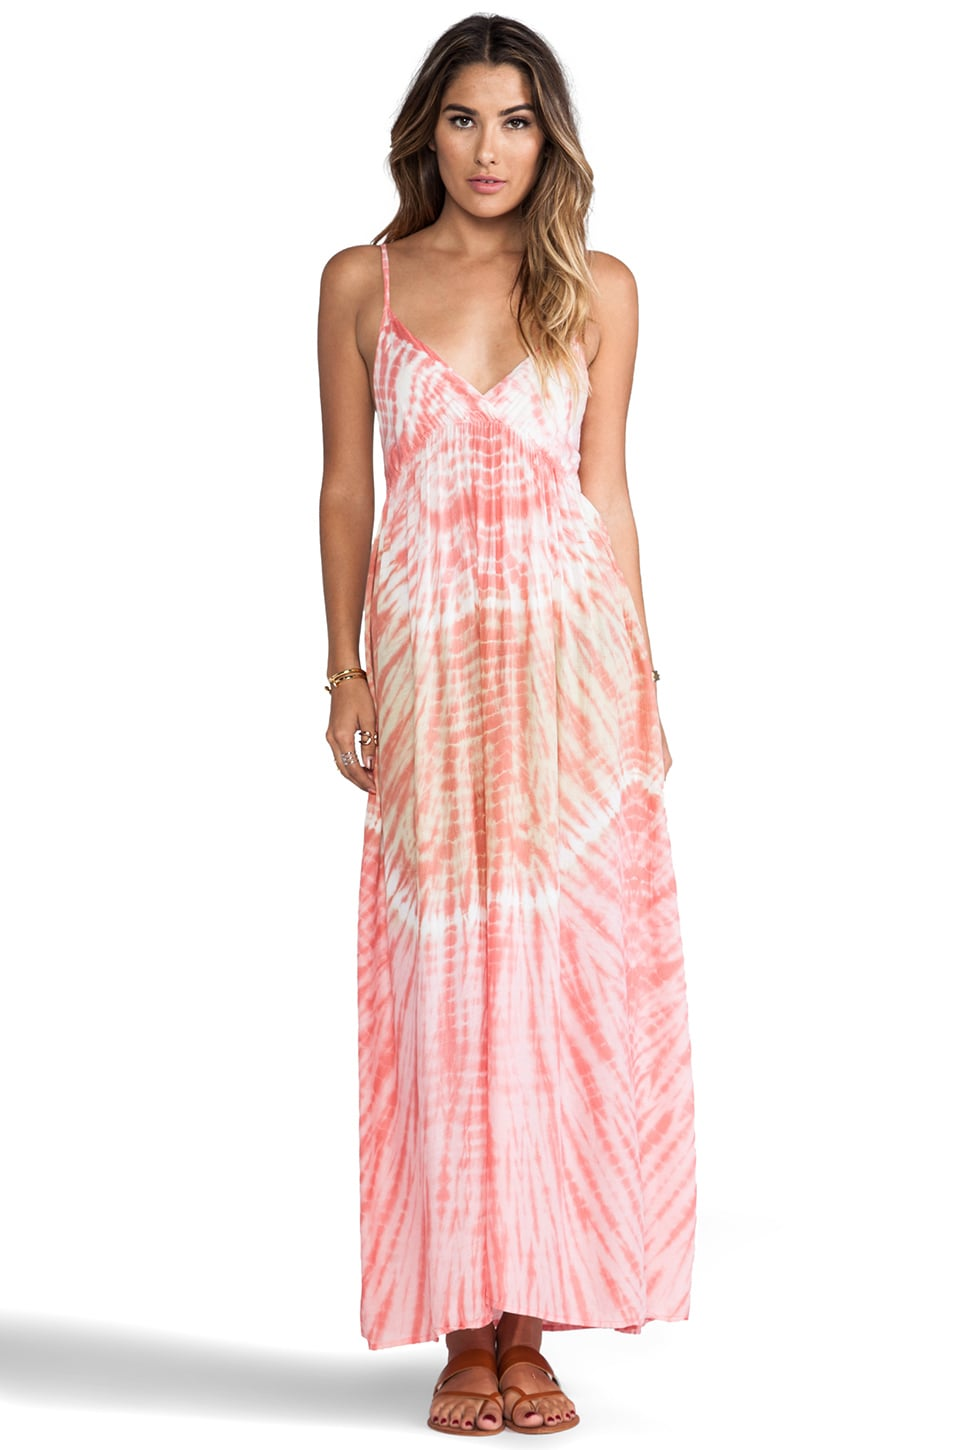 Tiare Hawaii Gracie Maxi Dress in Peach Abstract